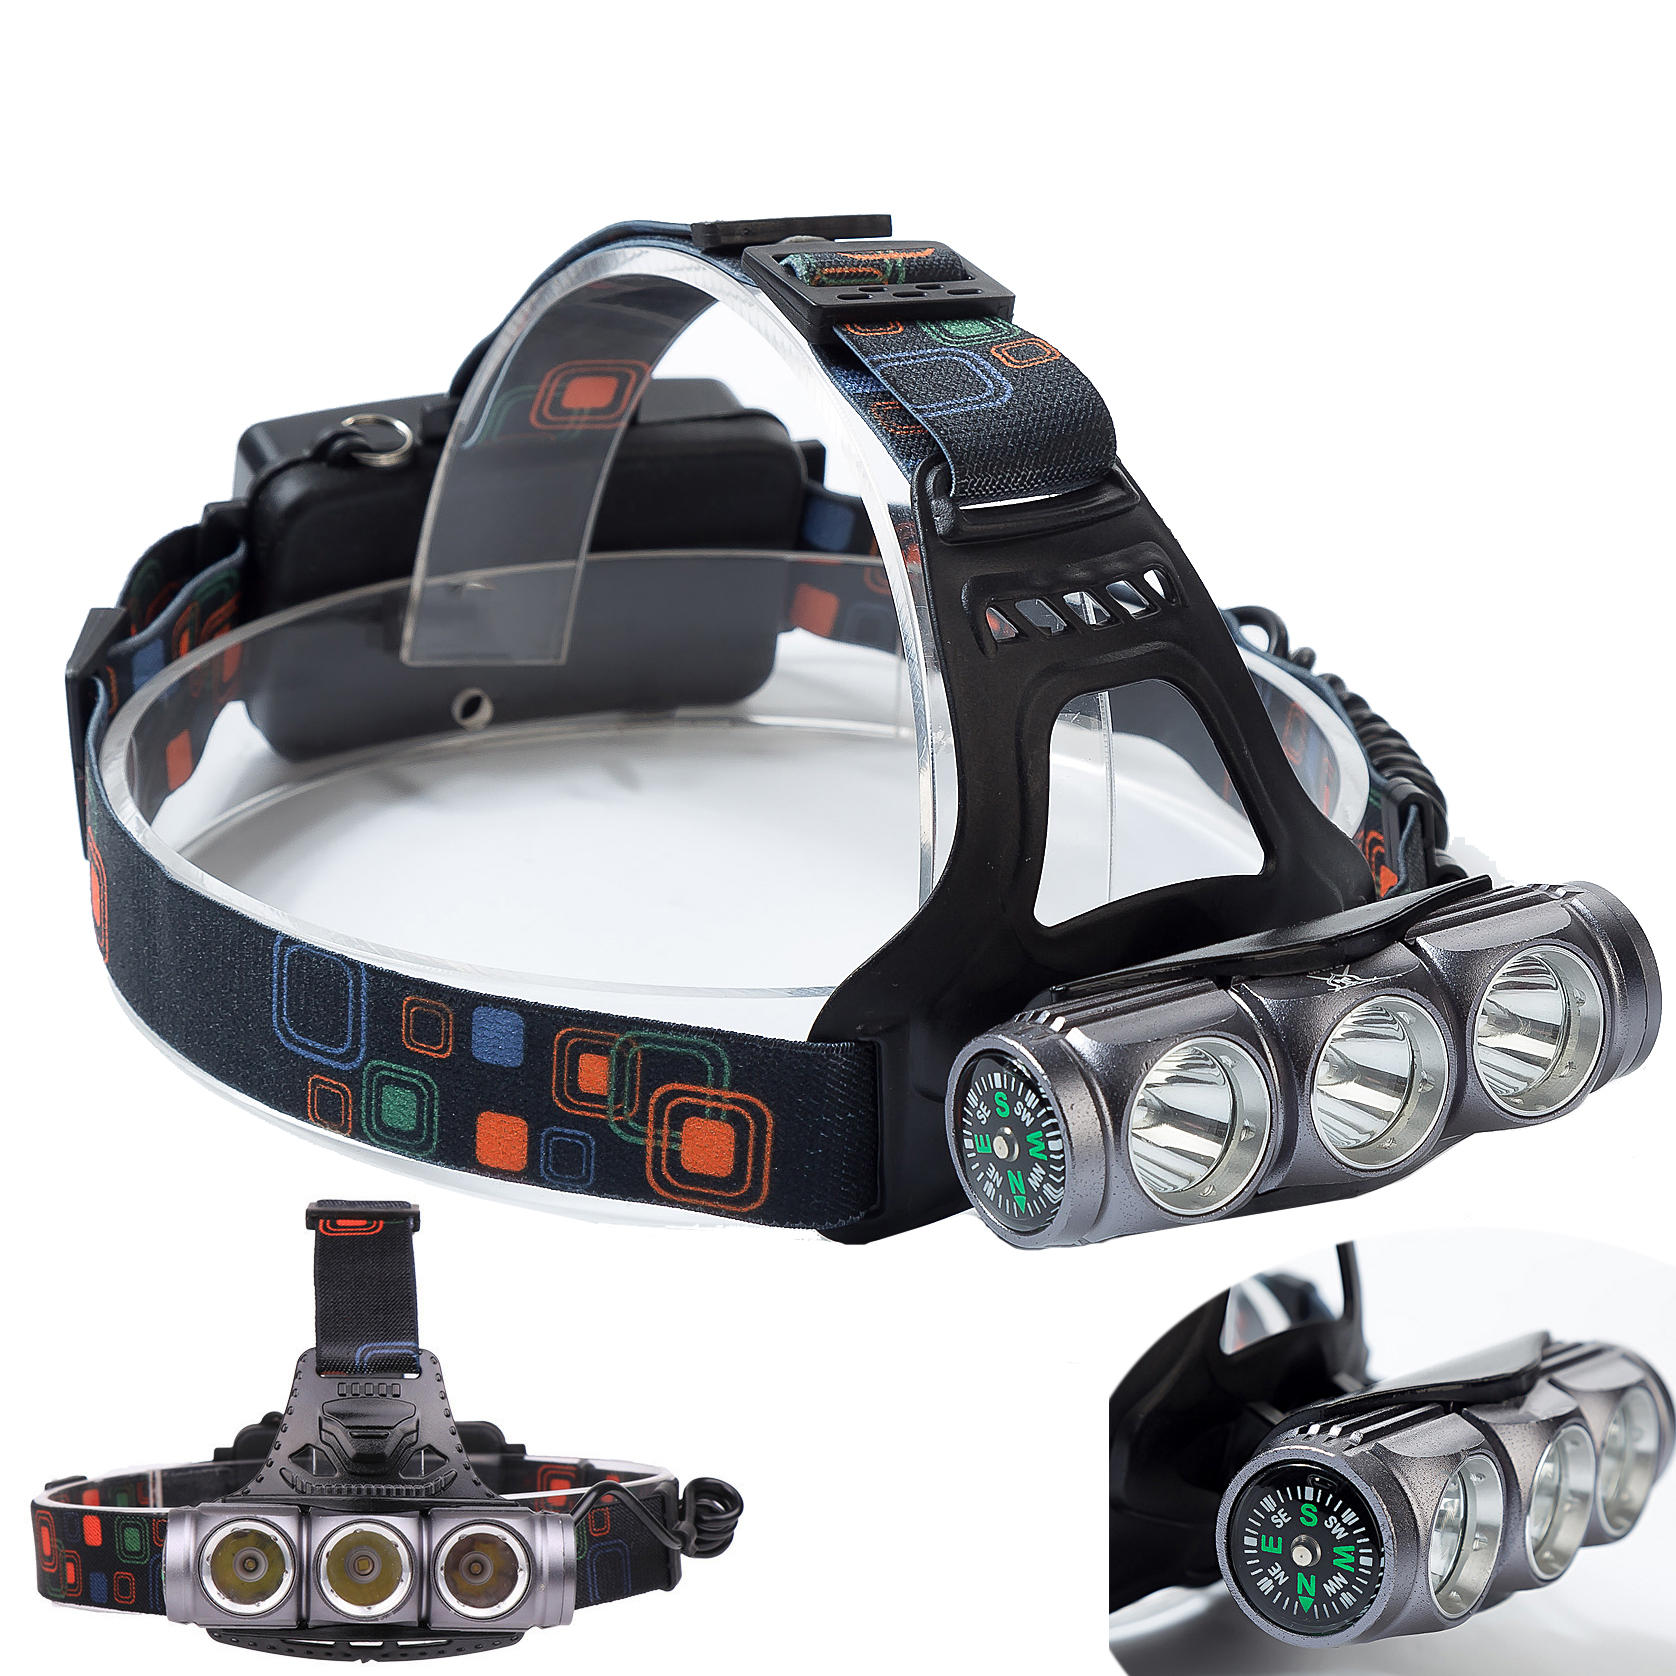 XANES® 1800LM T6+2 x XPE LED Compass HeadLamp 18650 Battery 4 Modes DC Direct Charge Waterproof For Outdoor Camping Hiki